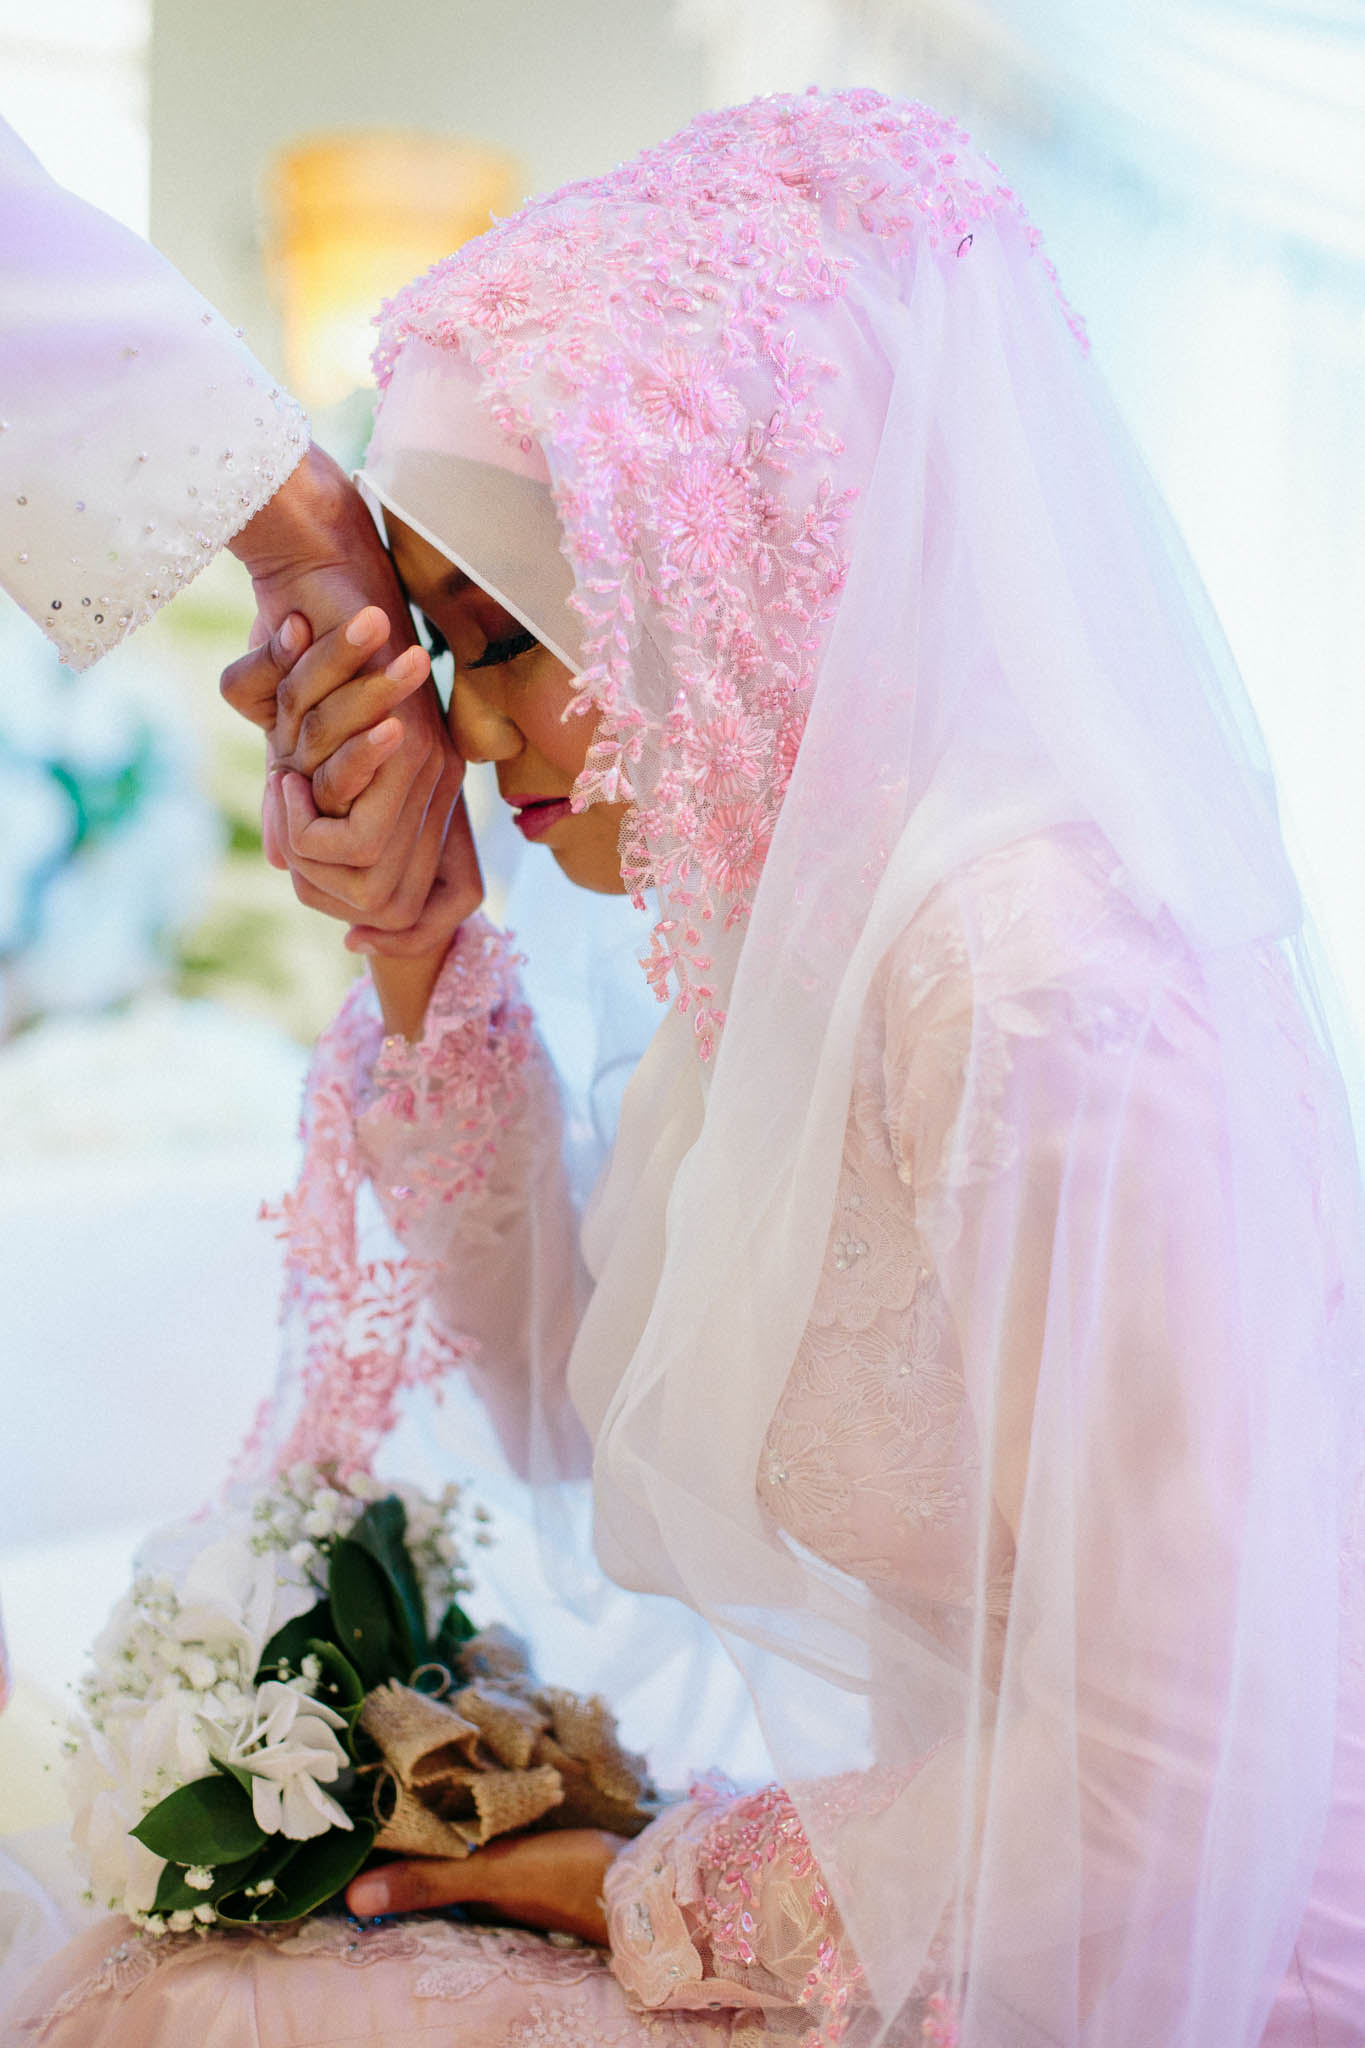 singapore-wedding-photographer-wedding-halimah-muhsin-018.jpg